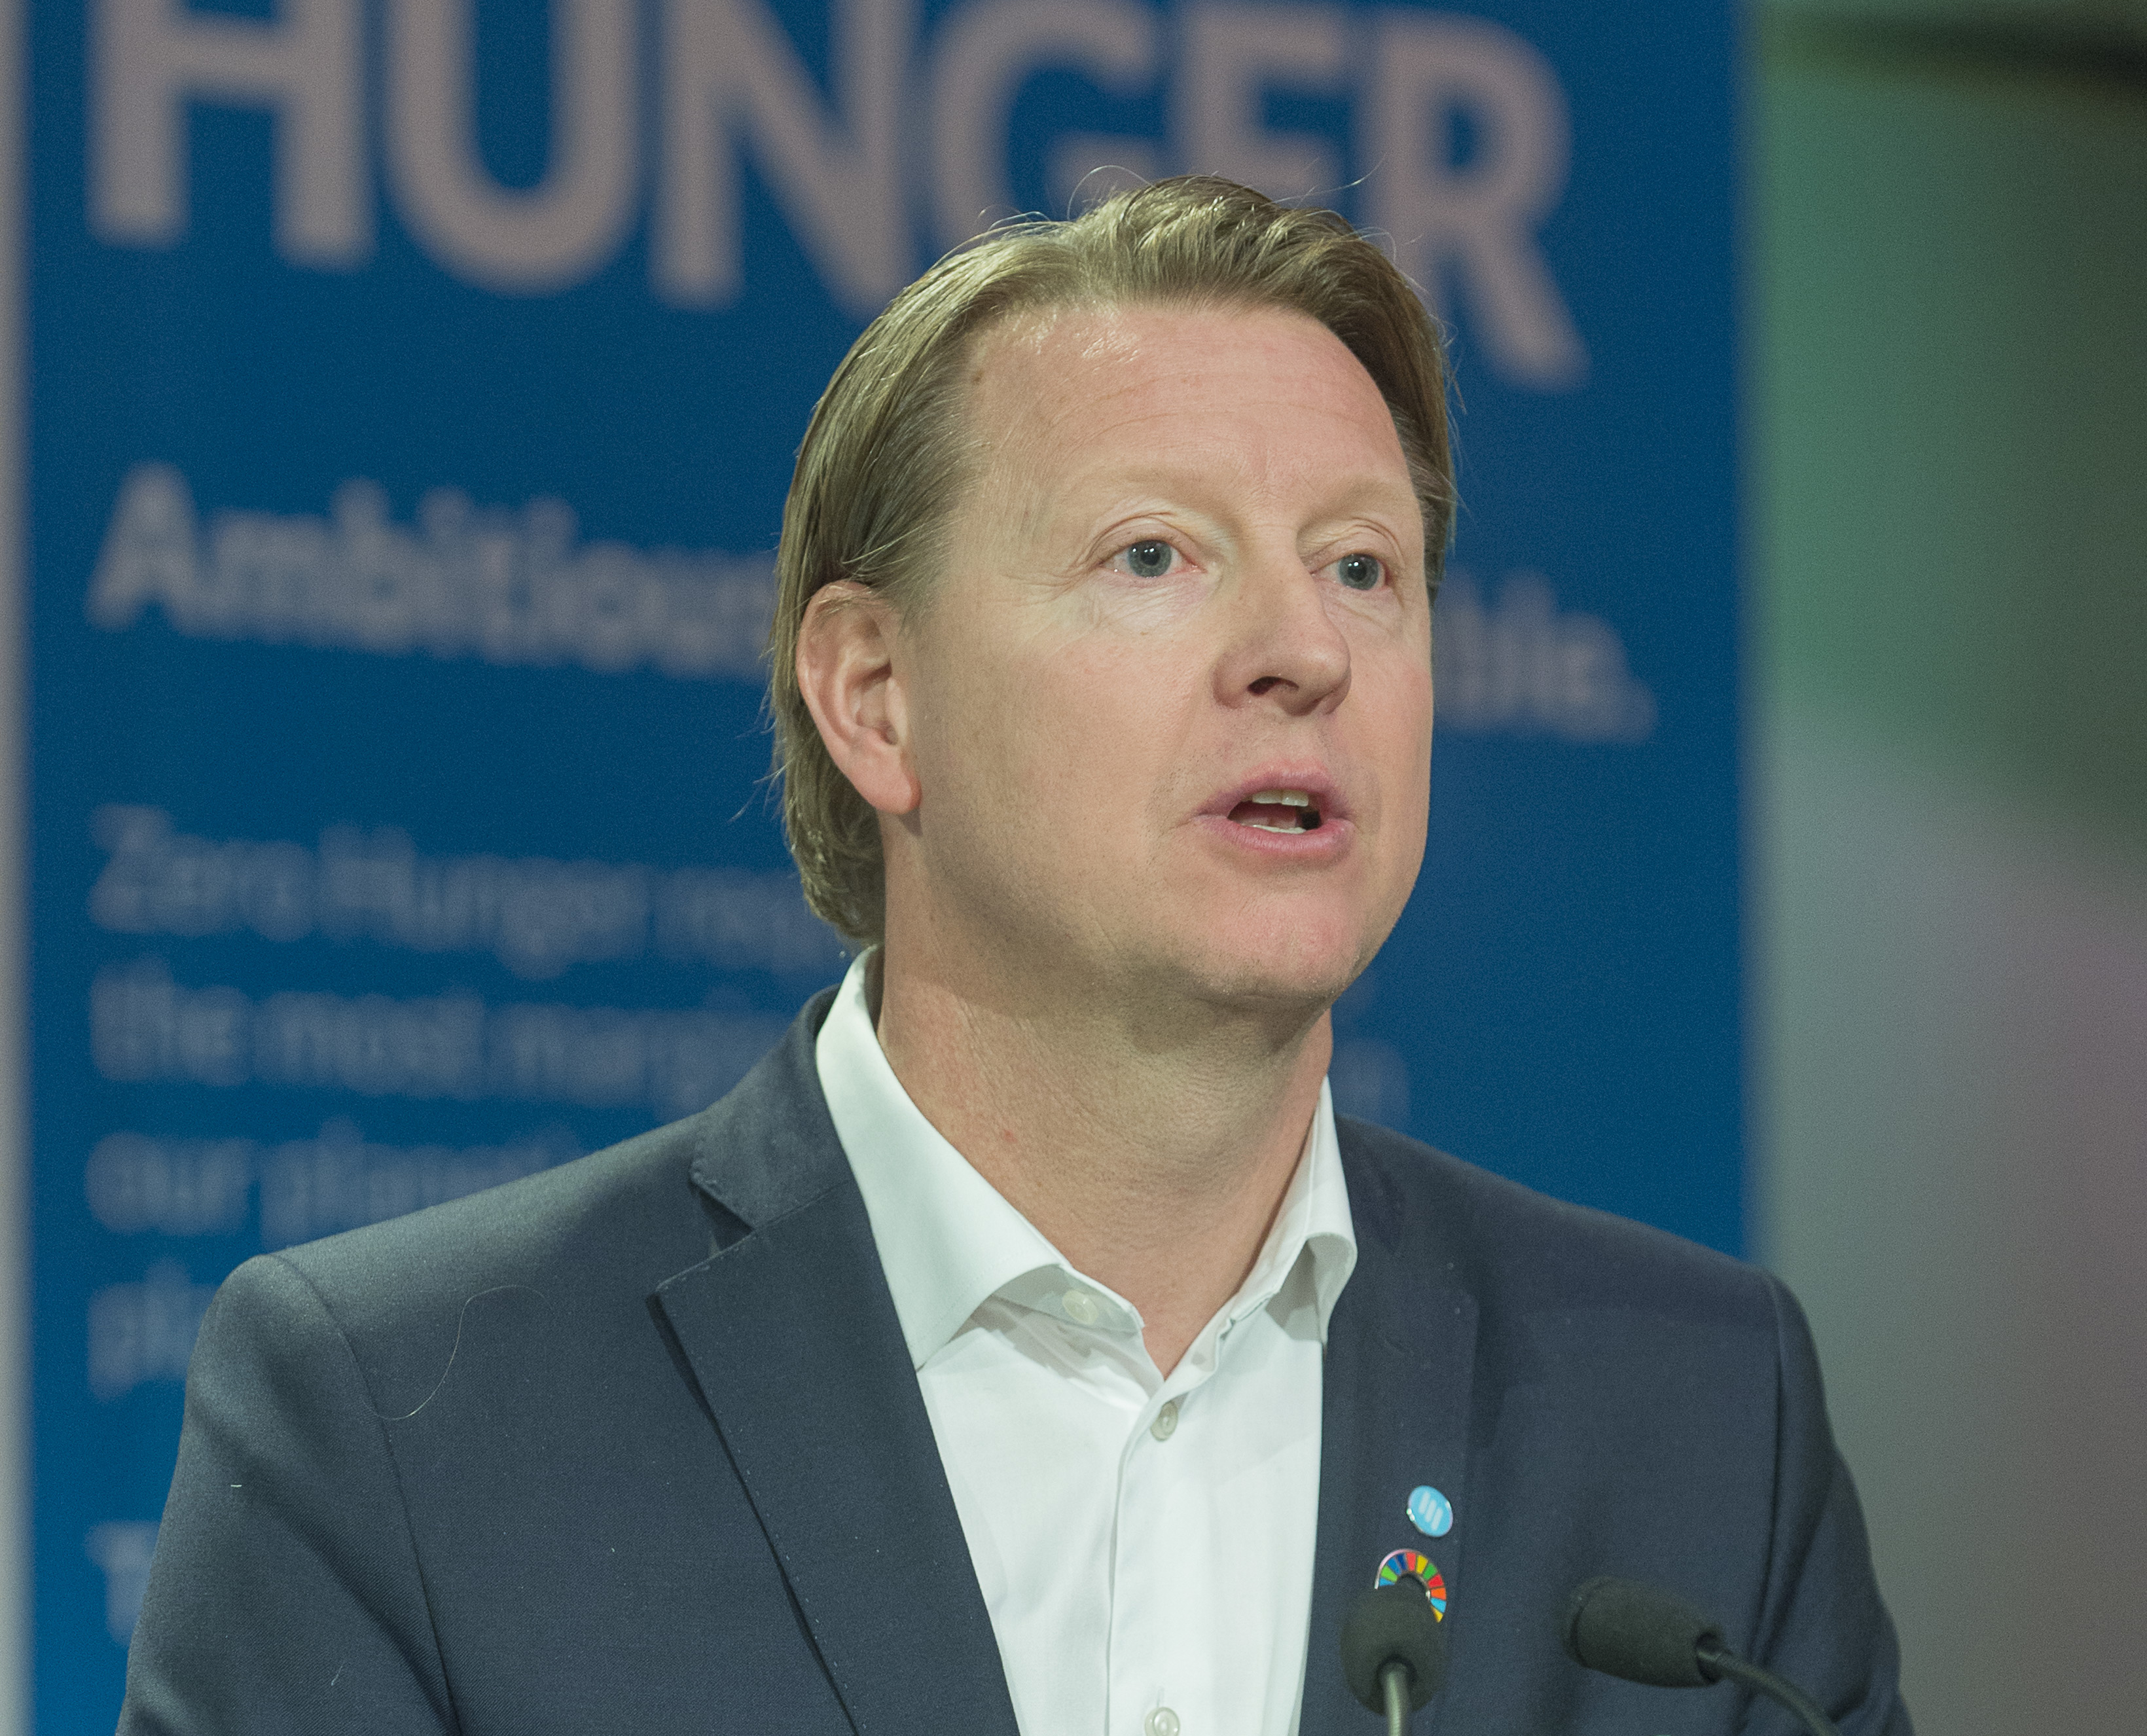 Ericsson CEO Hans Vestberg Receives WFP Hunger Hero Award